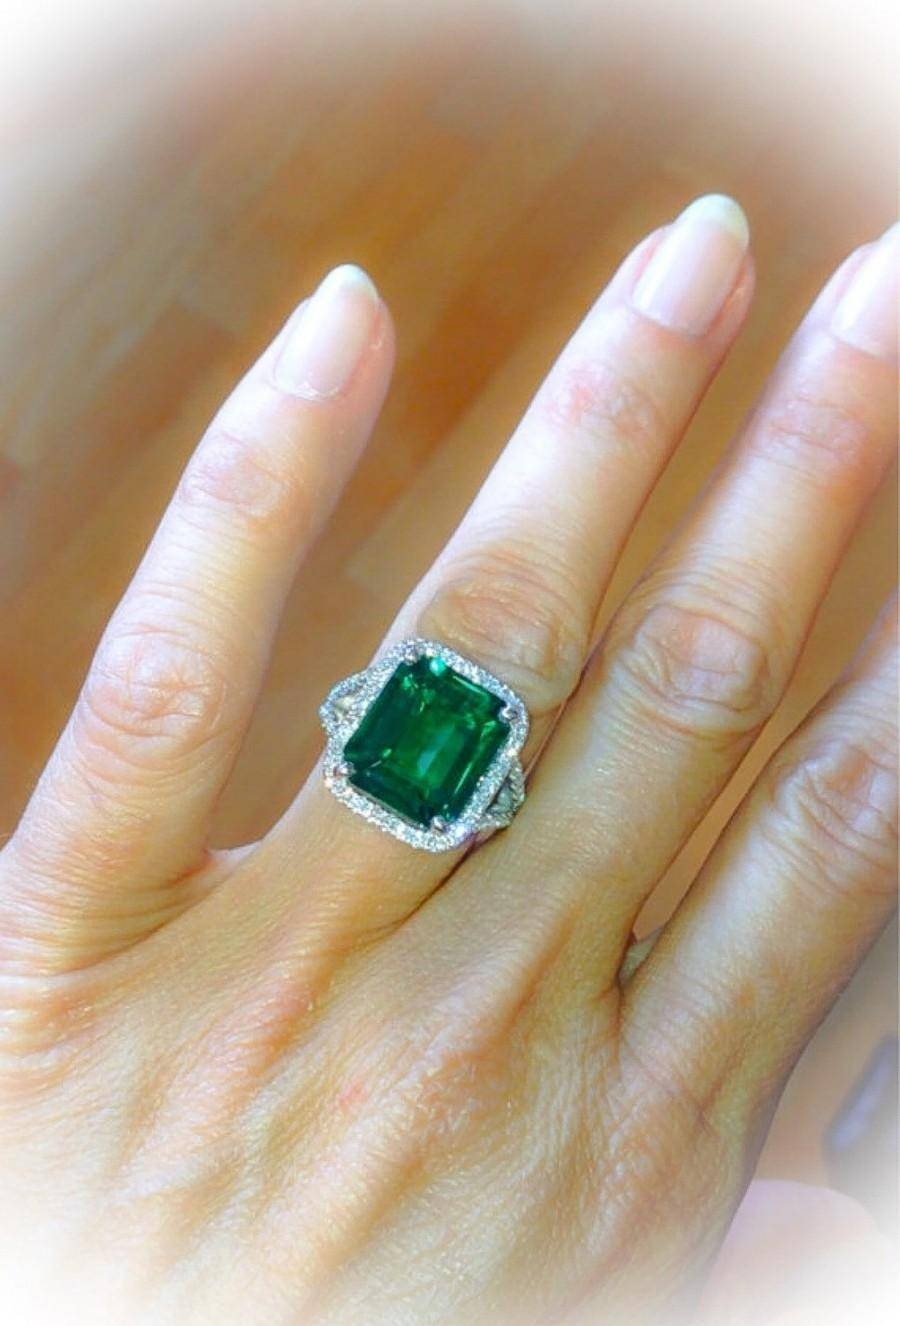 Emerald Engagement Ring Split Shank 18k White Gold 13x11mm 9ct With Regard To 2017 Emerald Cut Diamond Anniversary Rings (View 6 of 25)